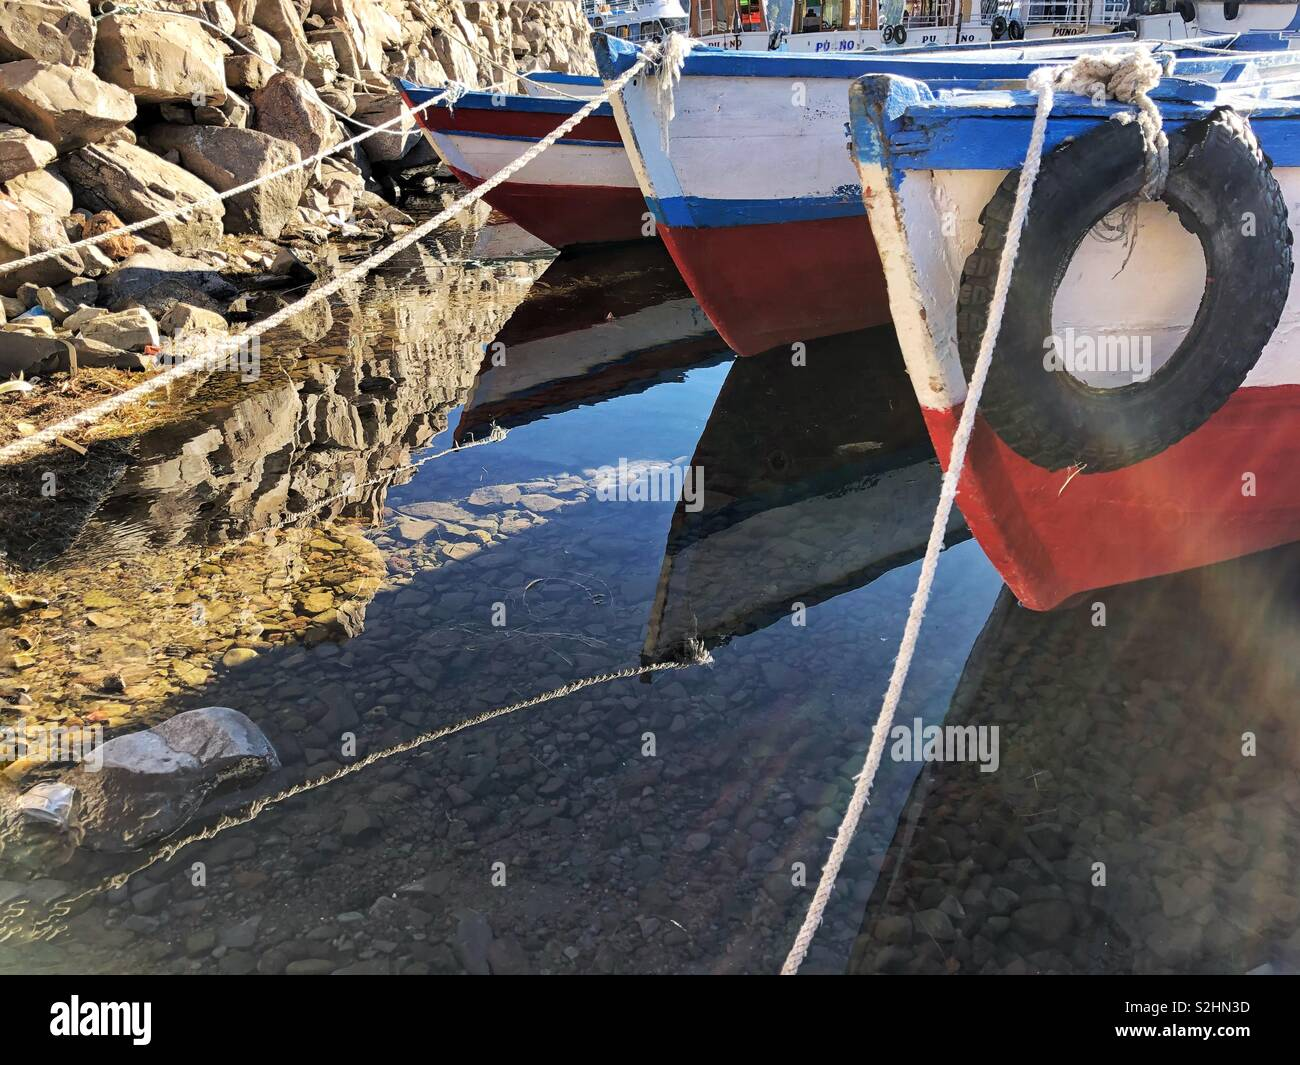 Boats - Stock Image